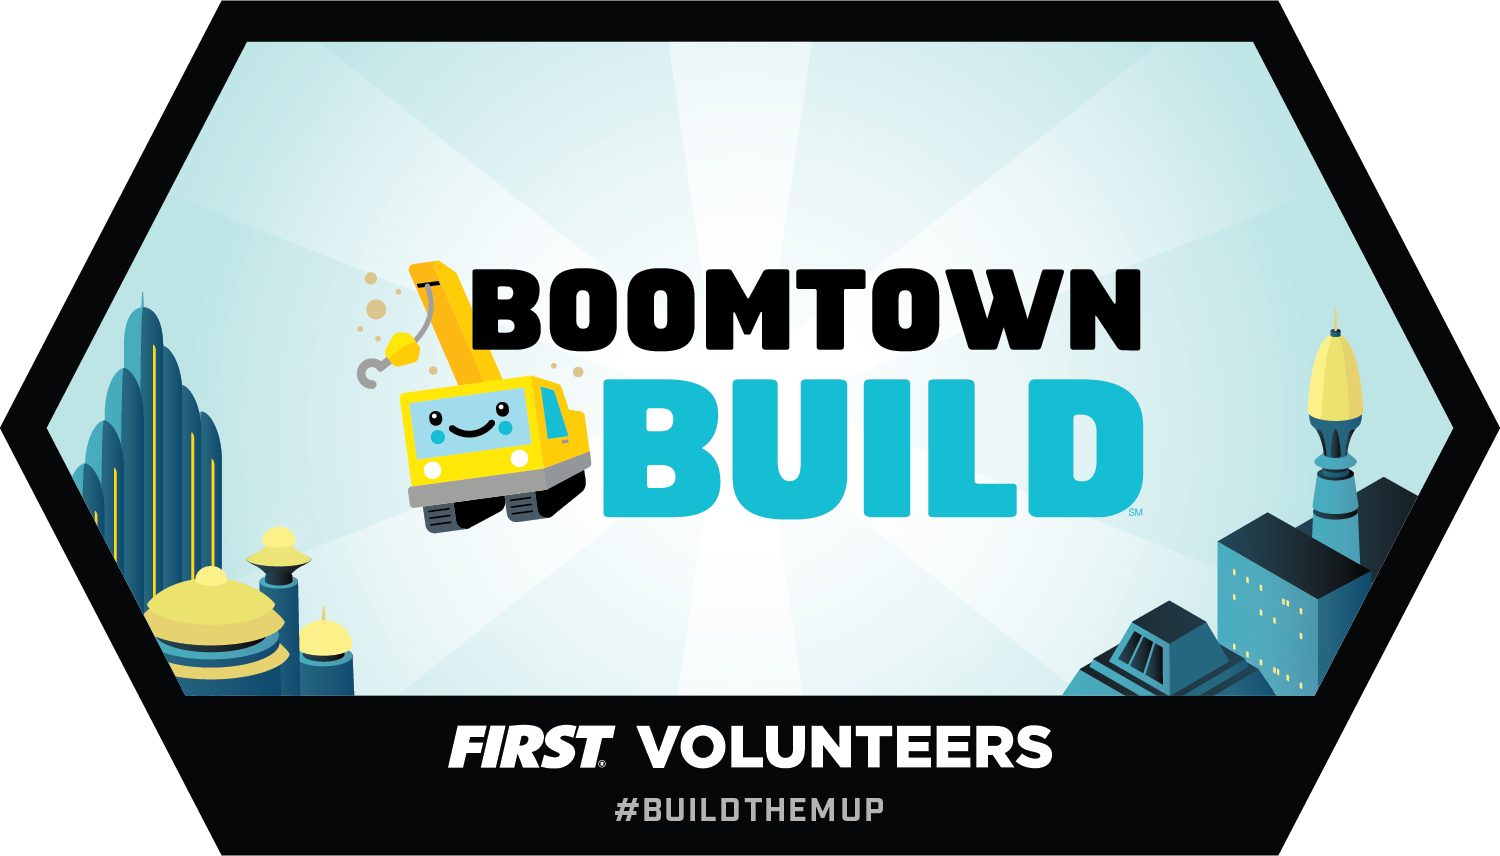 Build Tomorrow badge - BOOMTOWN BUILD